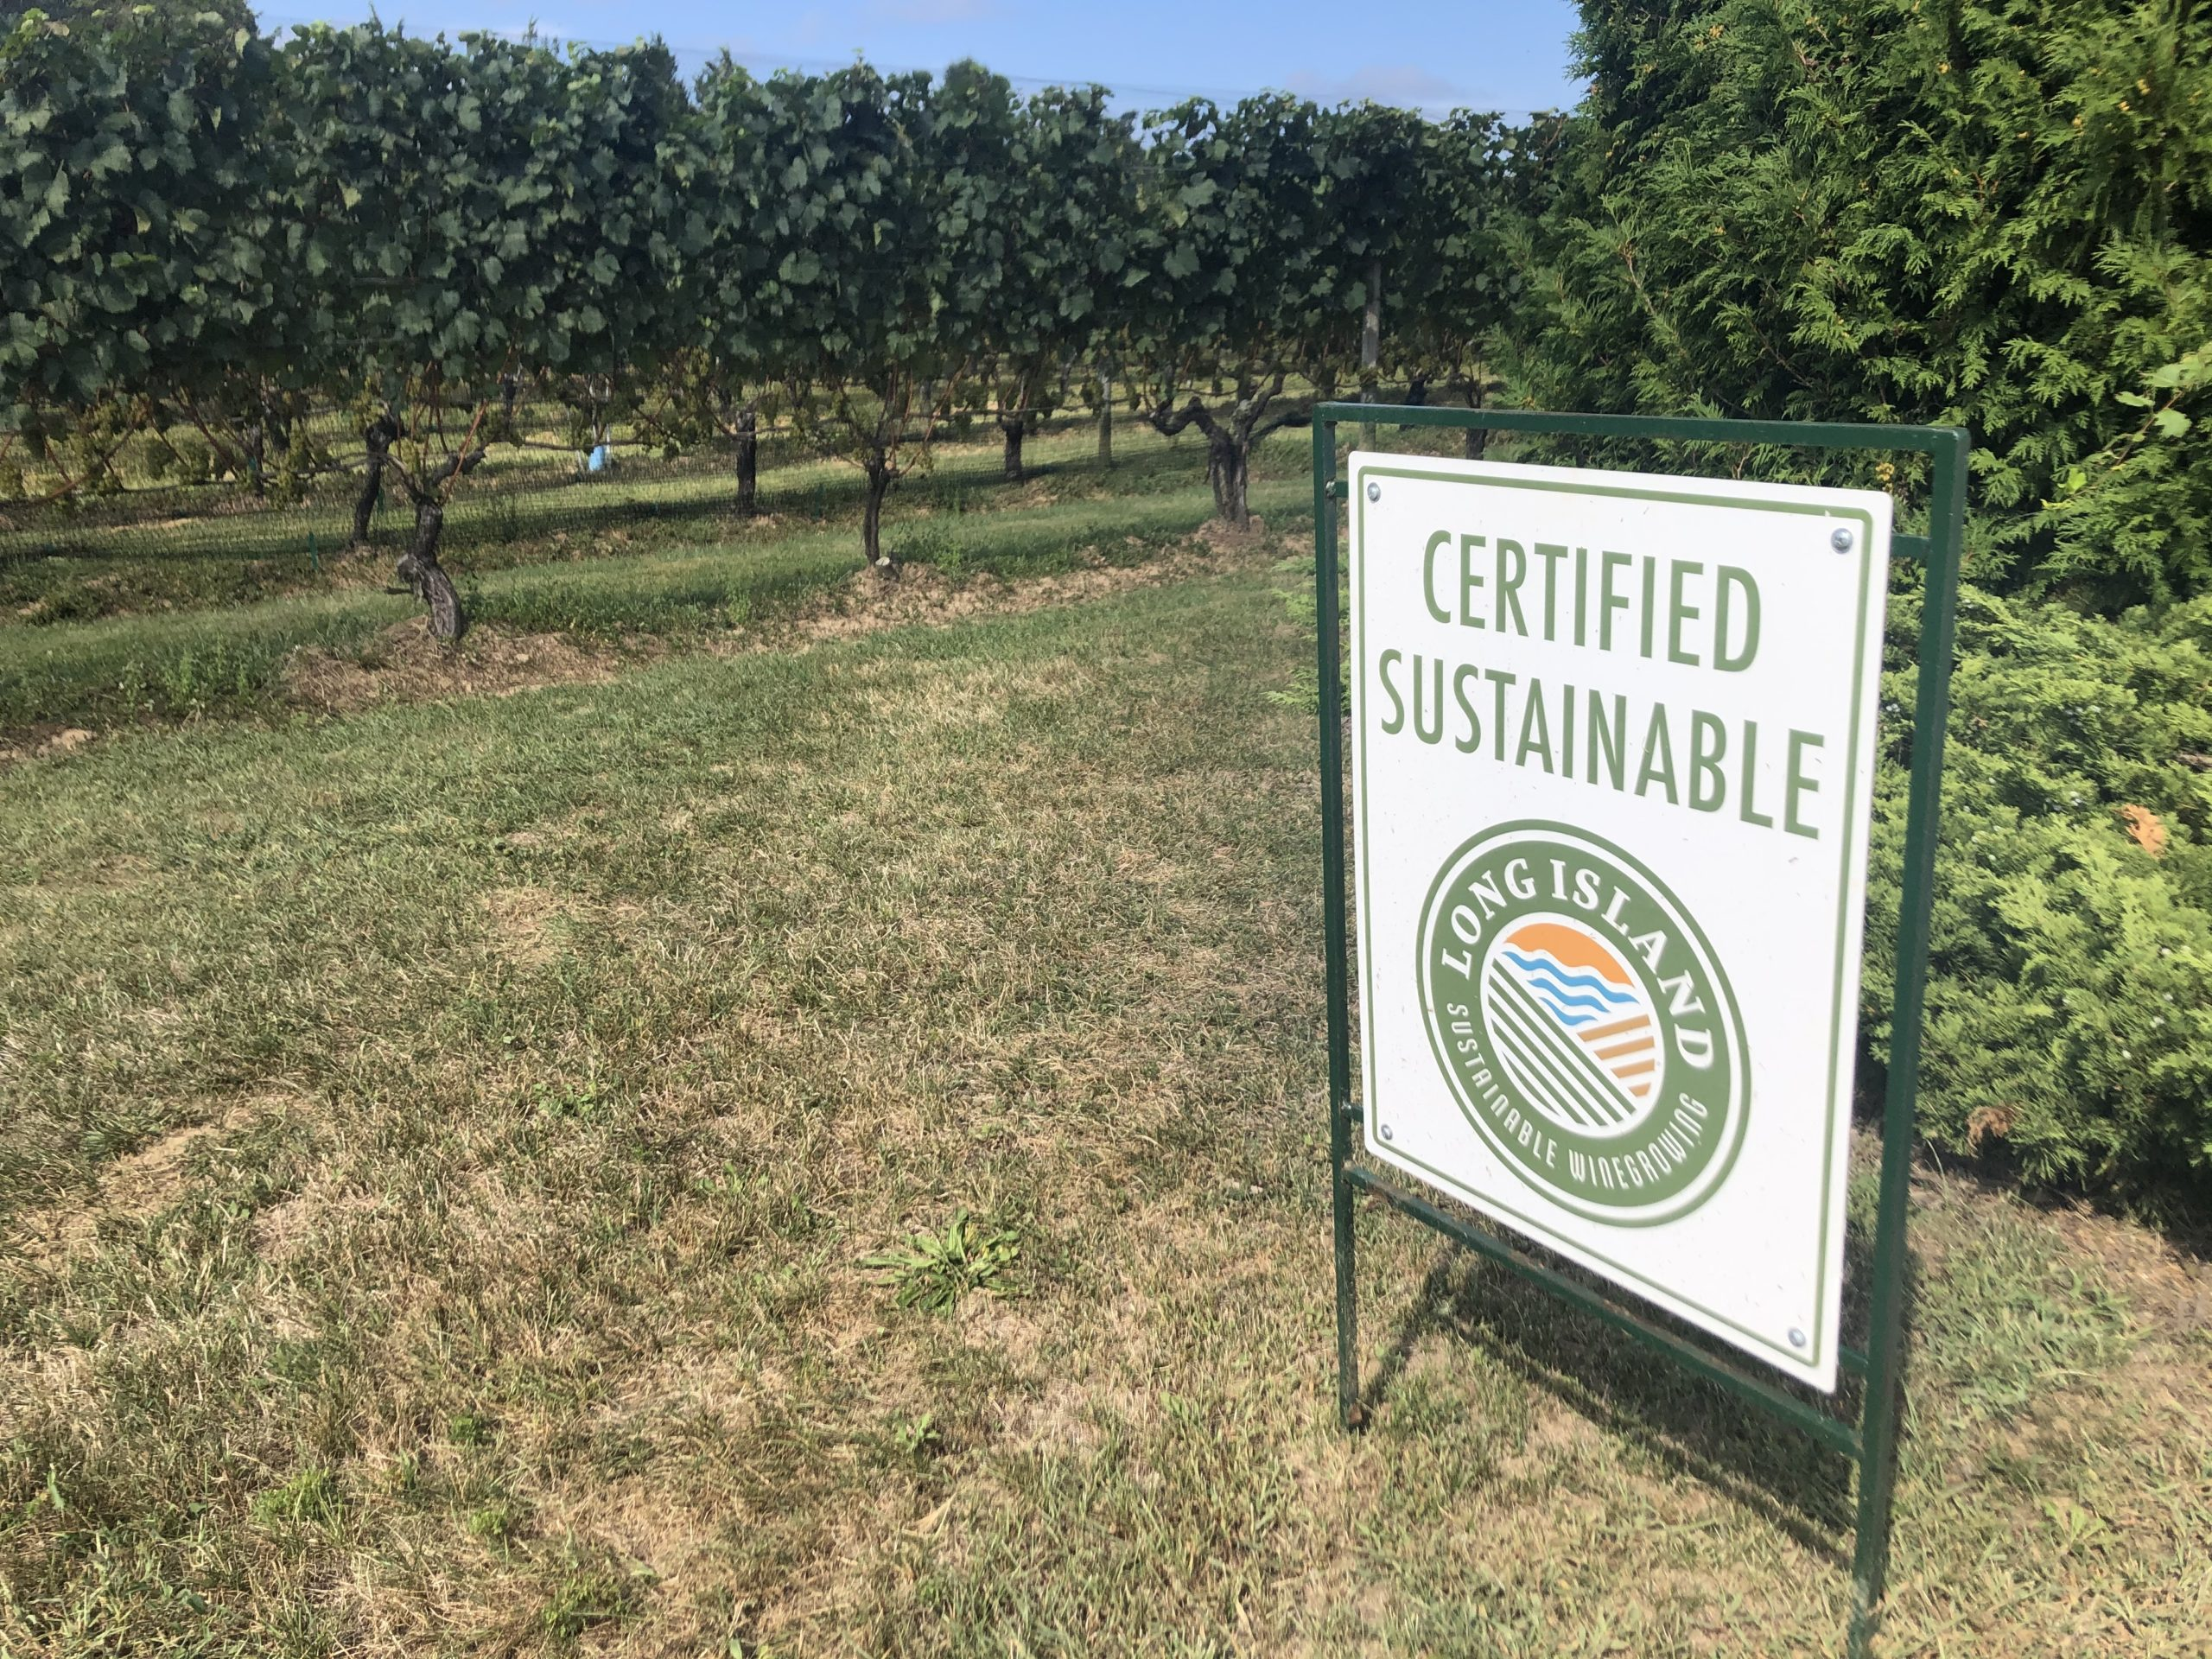 A certified sustainable sign at Wolffer Estate Vineyards.